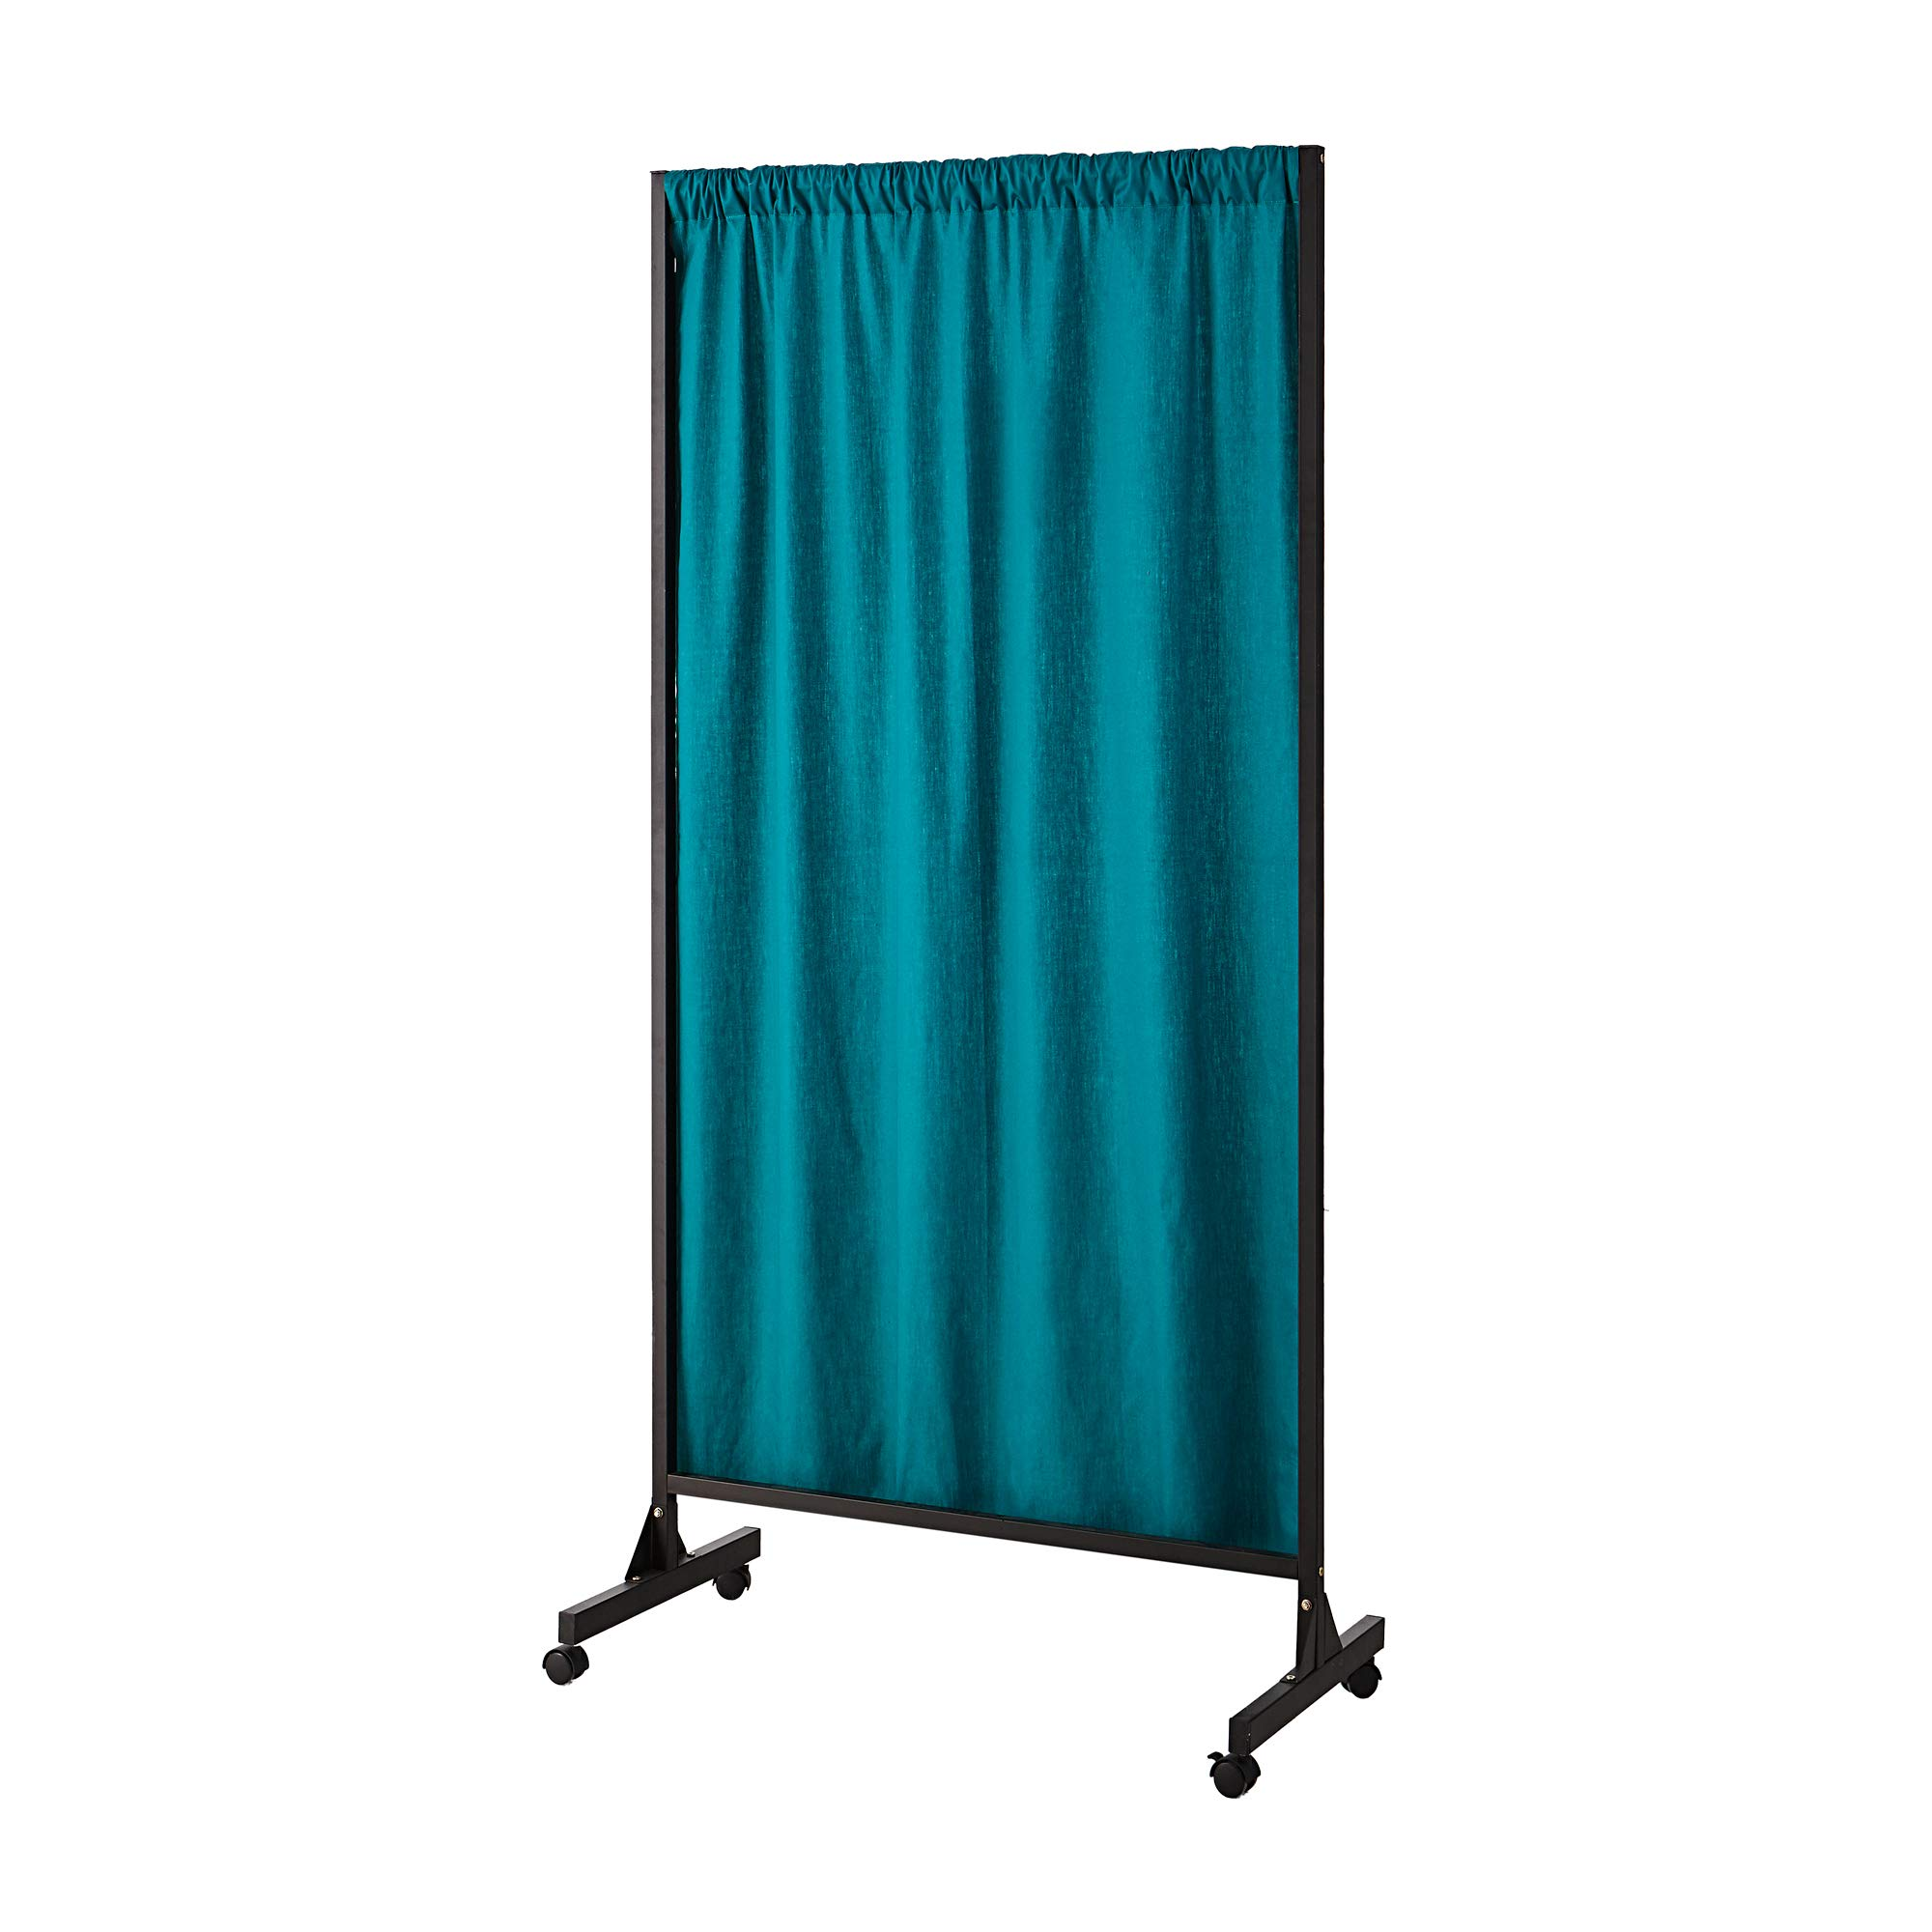 Don't Look at Me - Partial Room Divider - Black Frame with Ocean Depths Teal Cotton Fabric